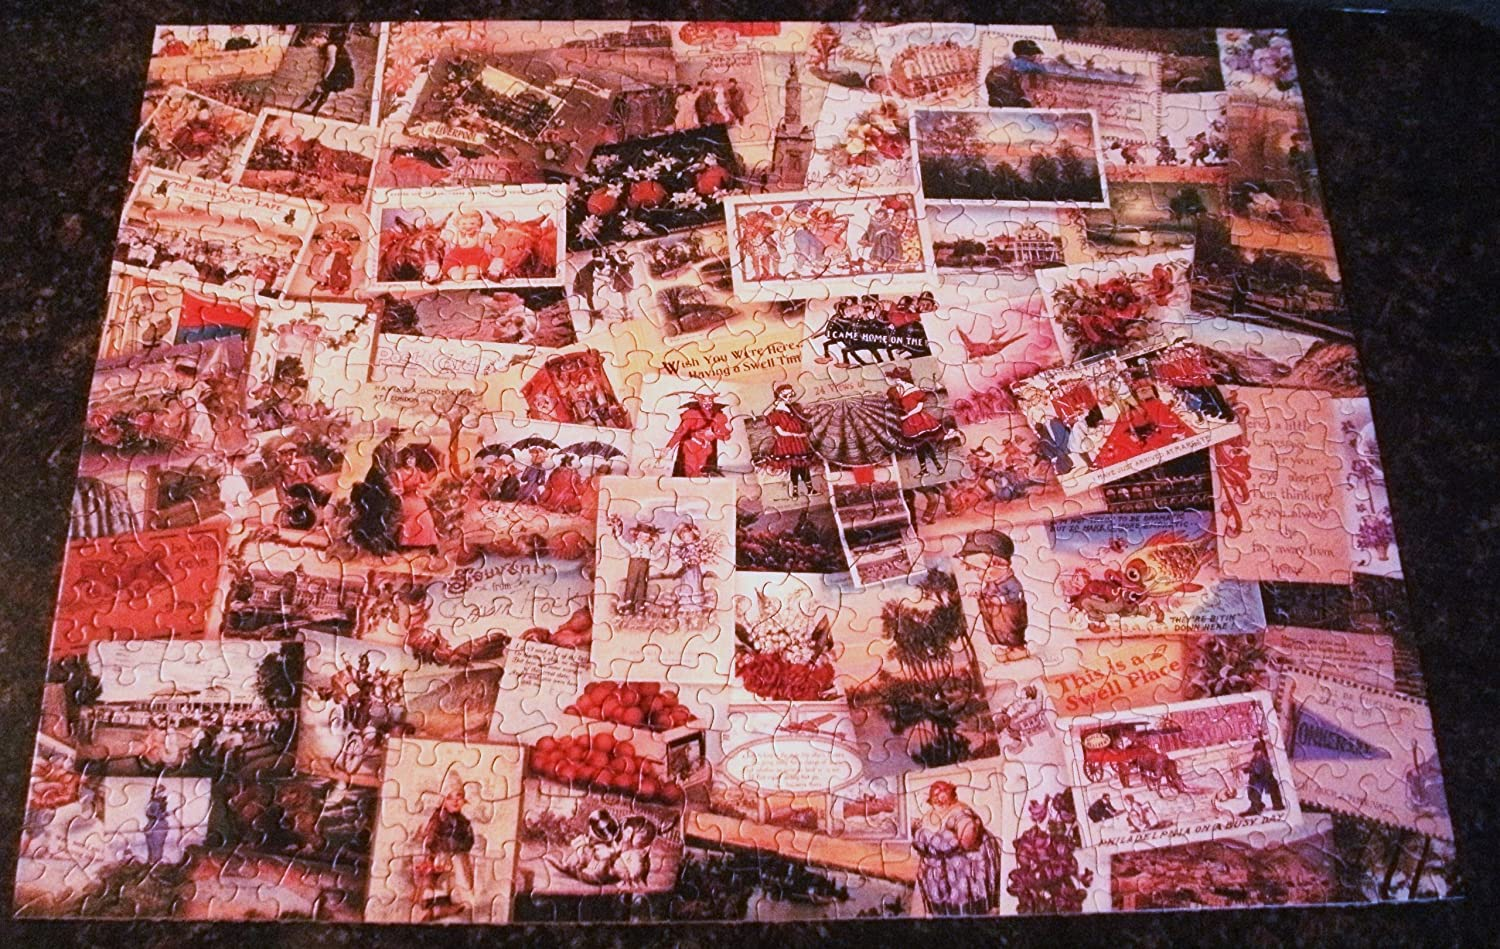 HALLMARK CARDS 500 PIECE PUZZLE 18 IN VINTAGE SPRINGBOK WISH YOU WERE HERE // HOW I SPENT MY SUMMER VACATION. VINTAGE POST CARD COLLECTION PICTURE . BY 23.5 IN TITLED